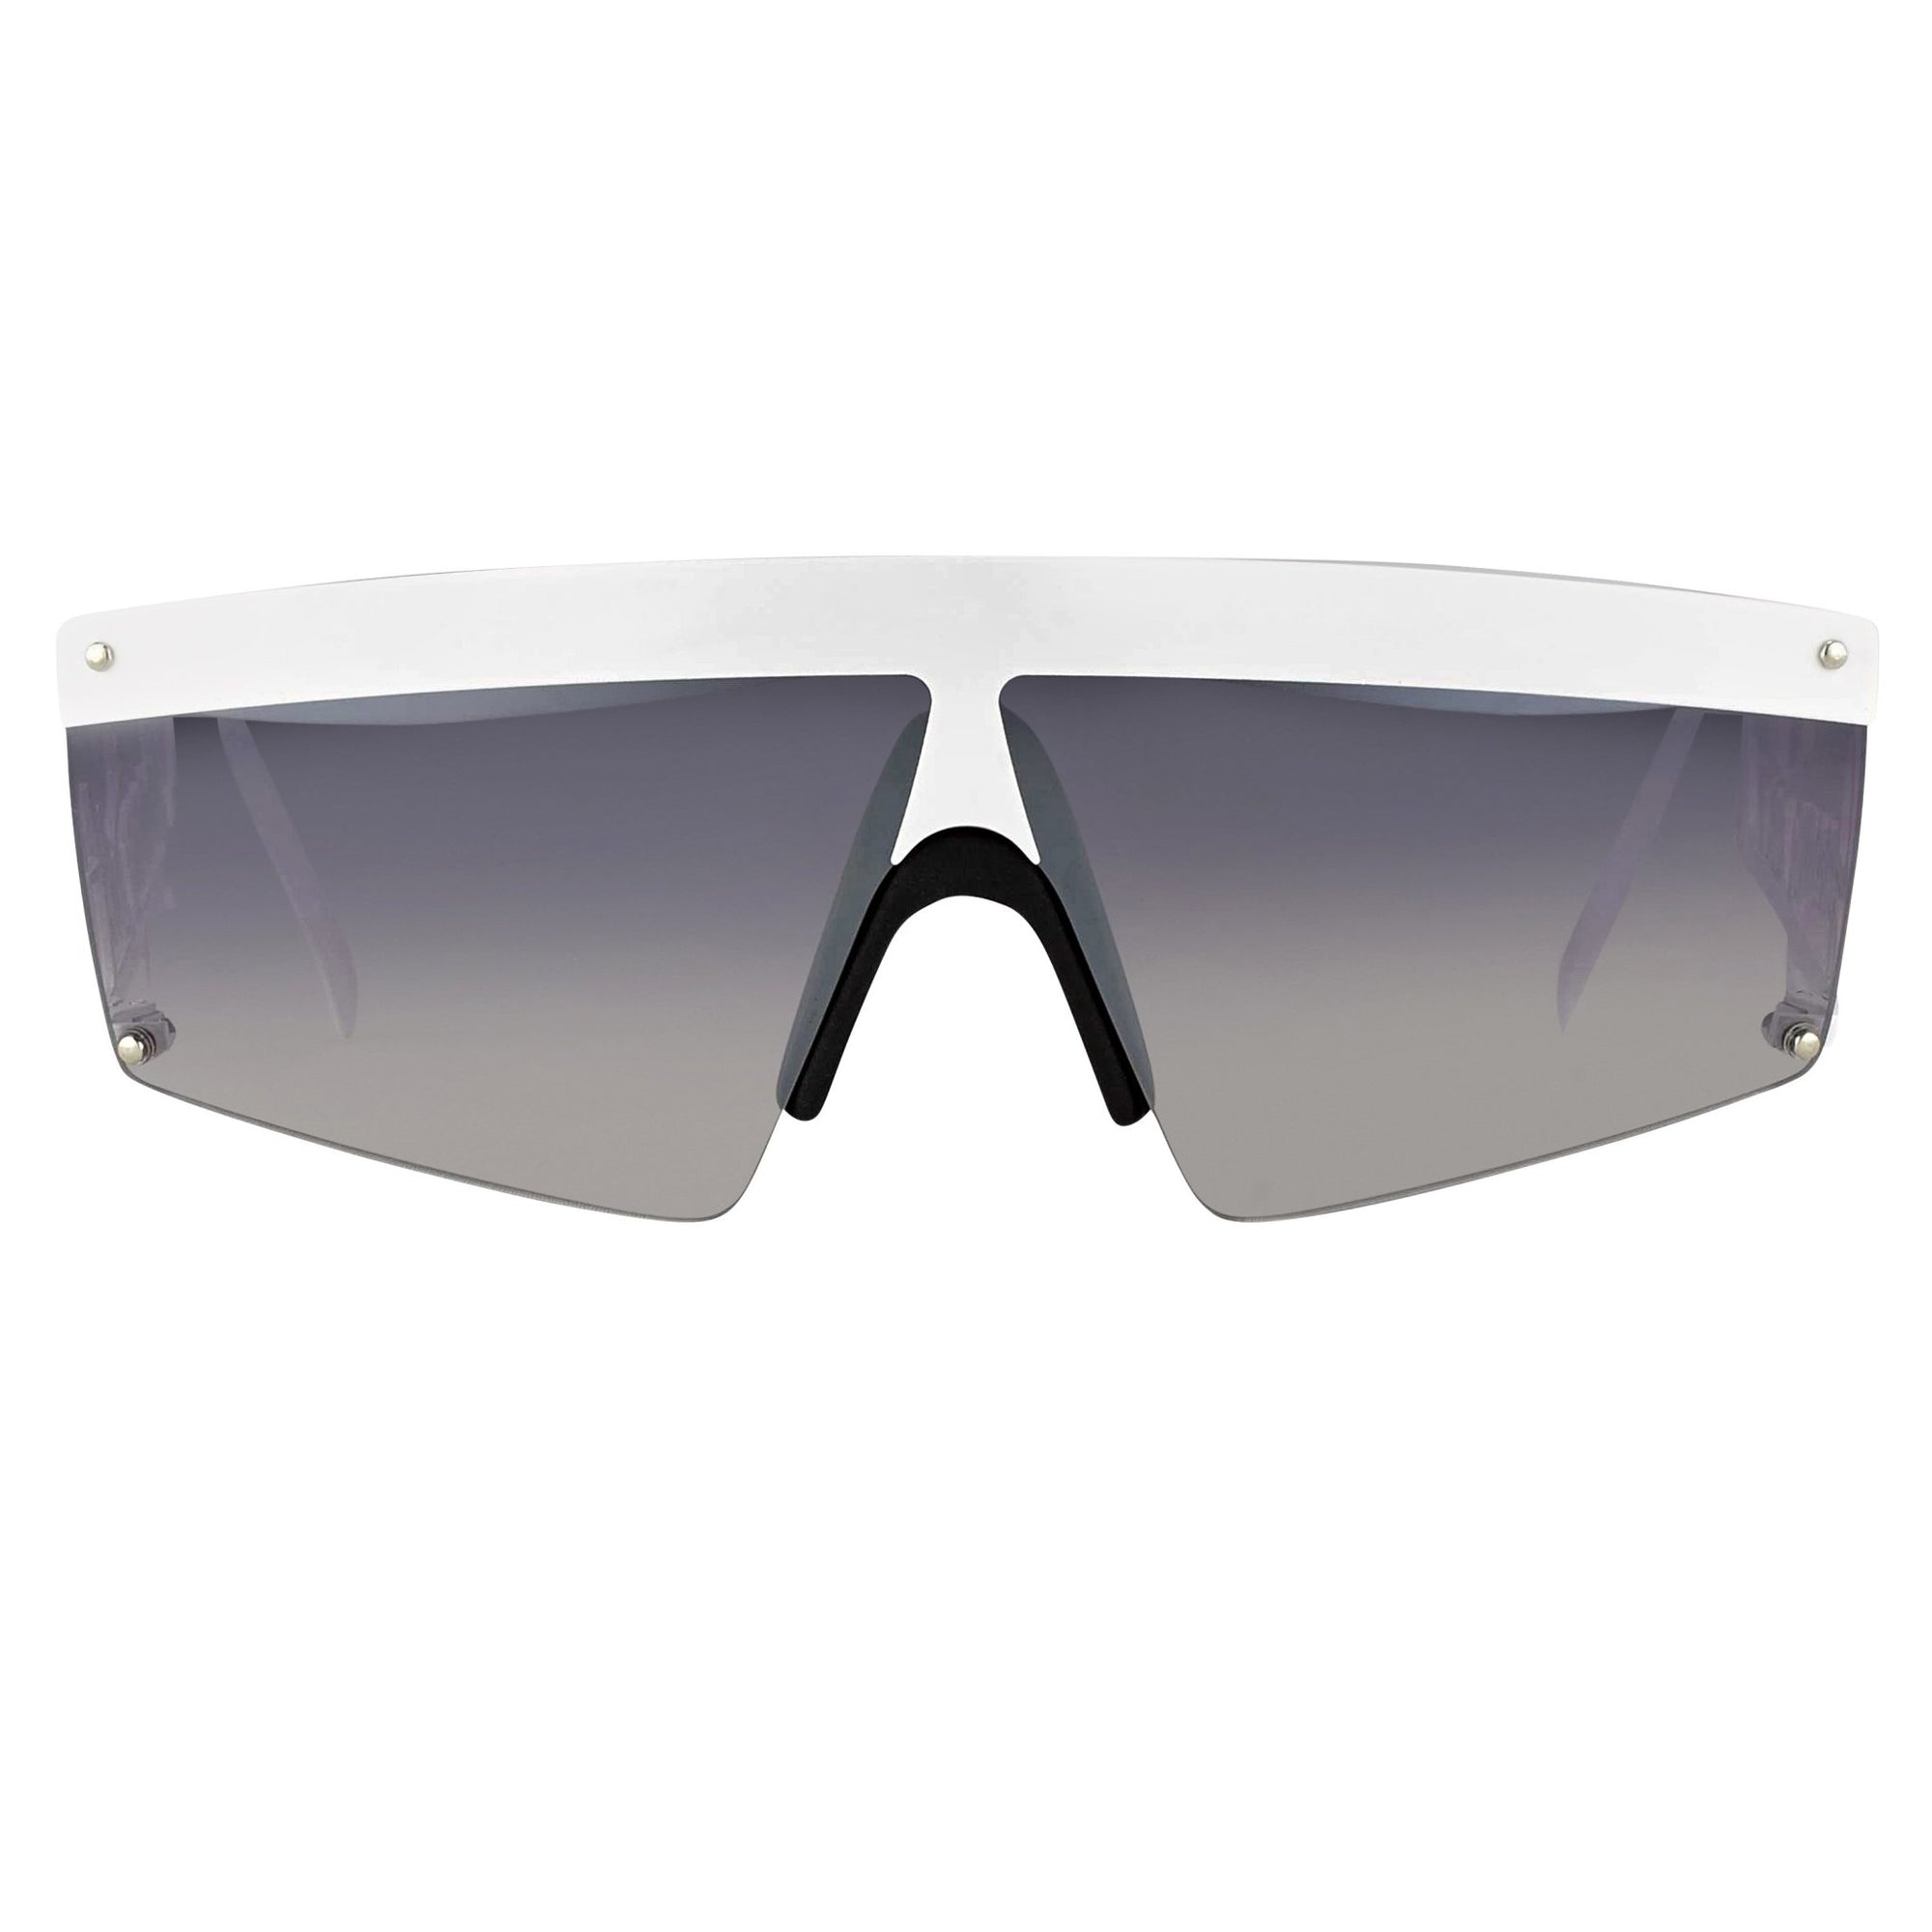 Jeremy Scott Sunglasses Shield Signature White With Grey Category 3 Graduated Flash Mirror Lenses JSSIGNATUREC7SUN - Watches & Crystals